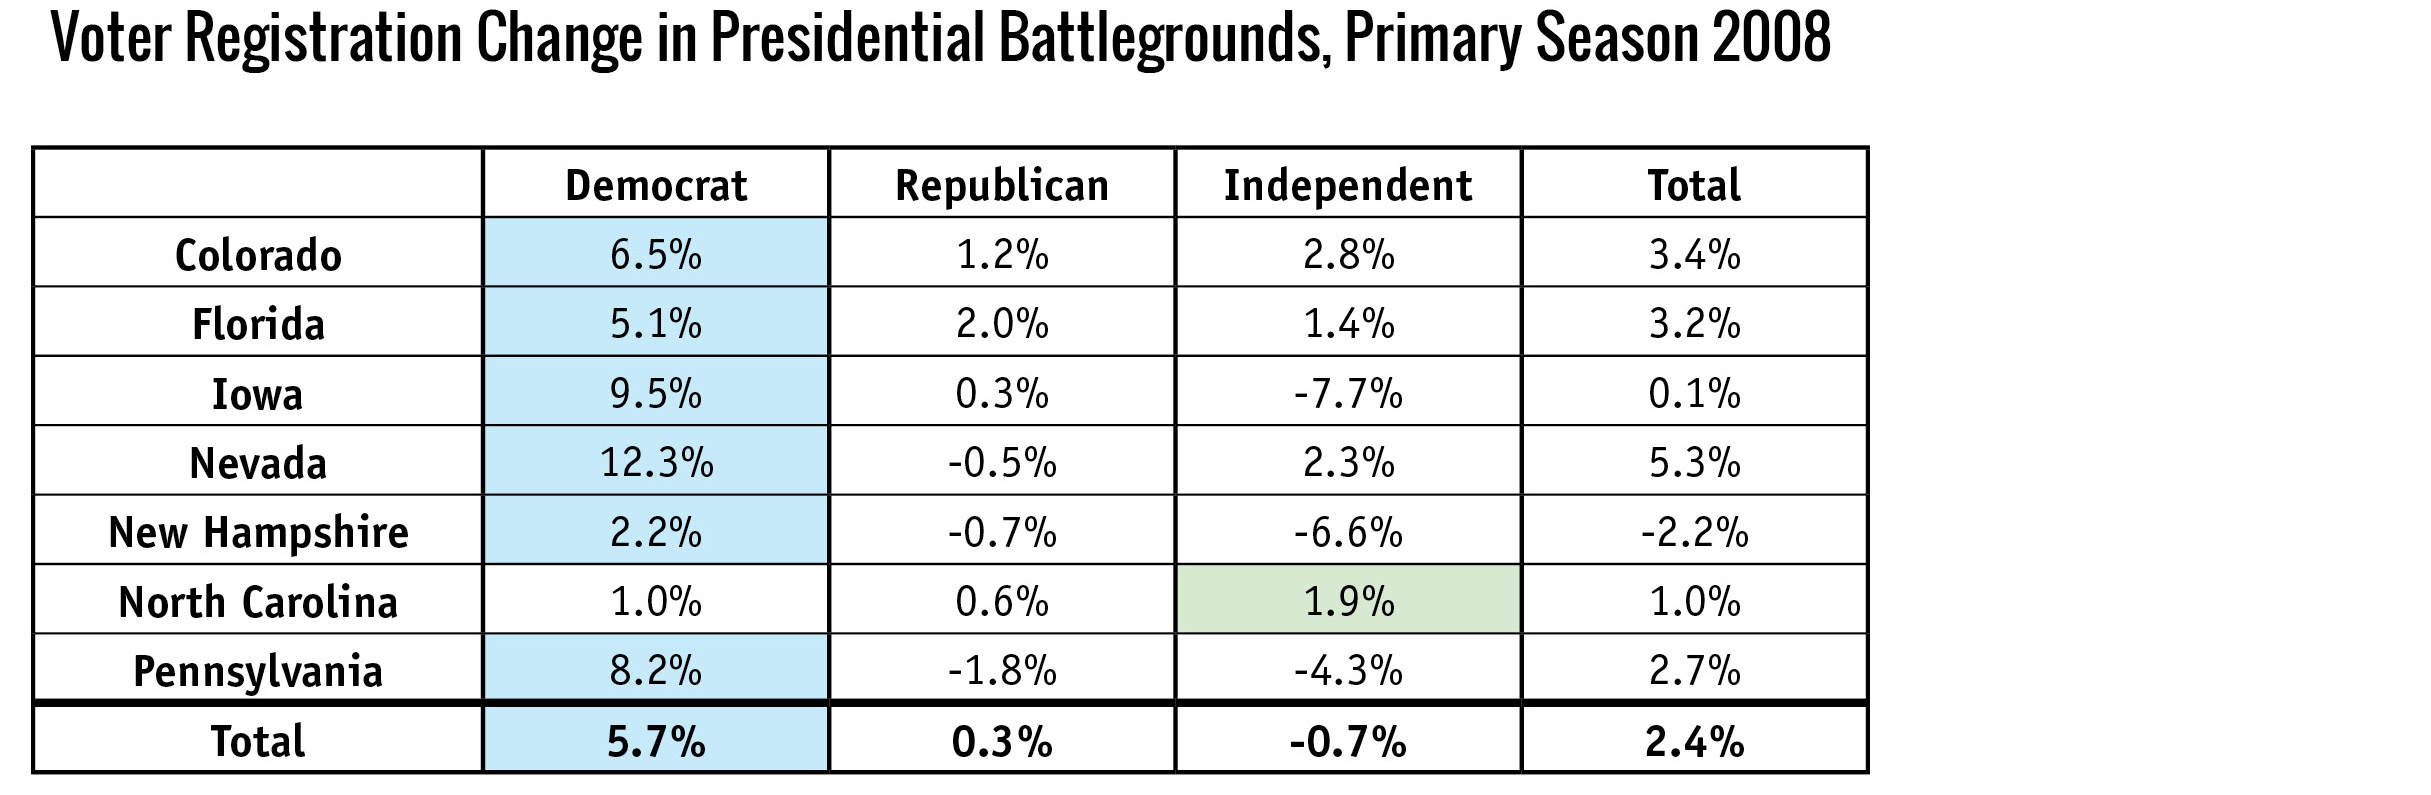 Voter Registration Change in Presidential Battlegrounds, Primary Season 2008